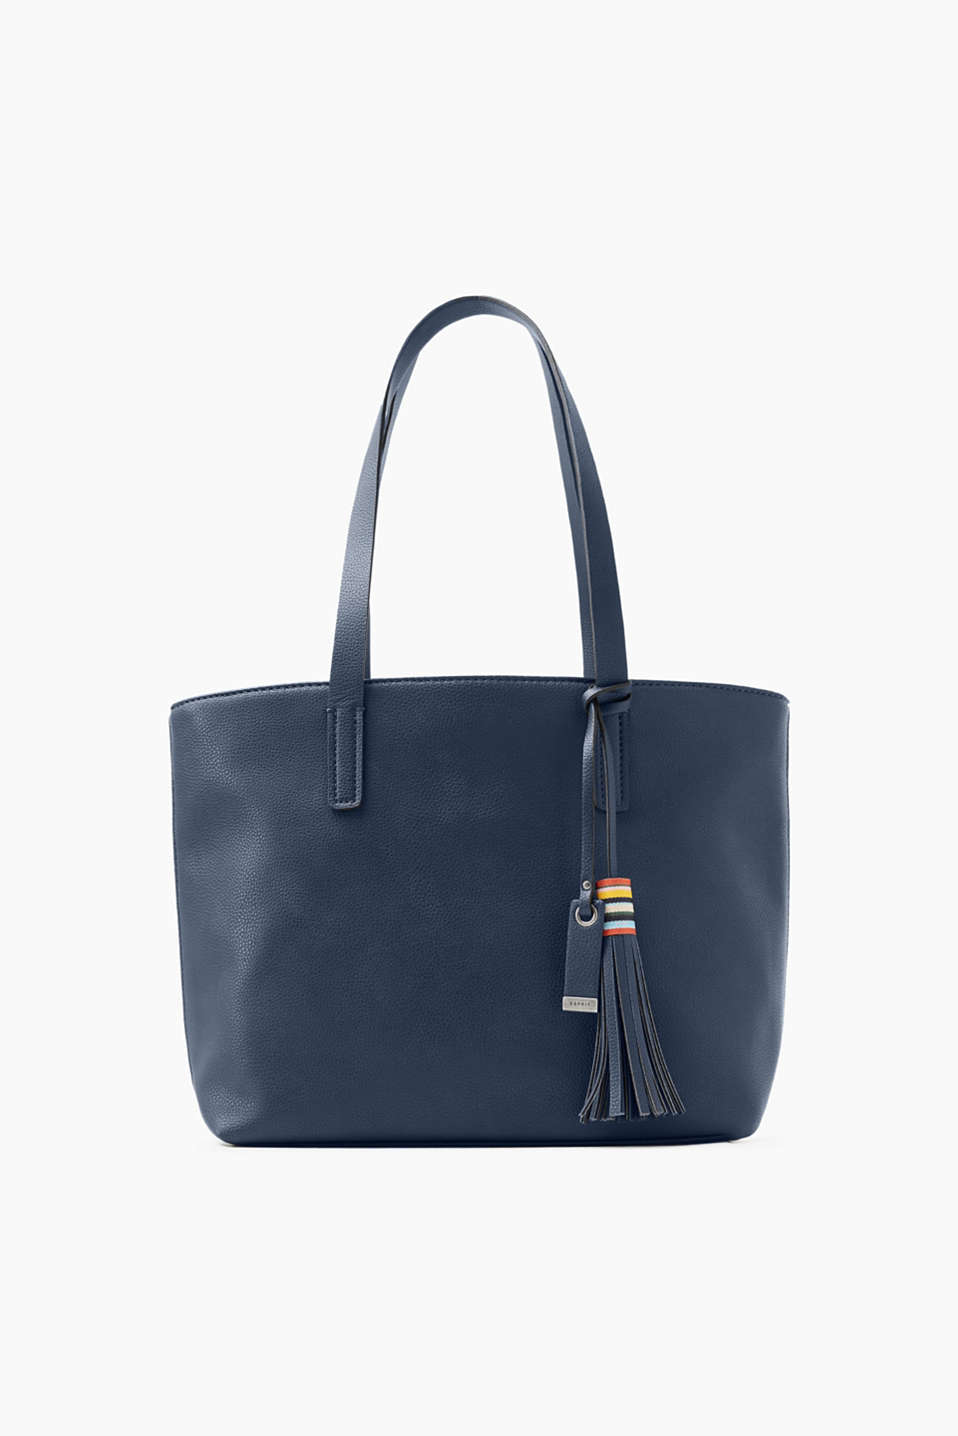 Shopper in high-quality faux leather with narrow handles